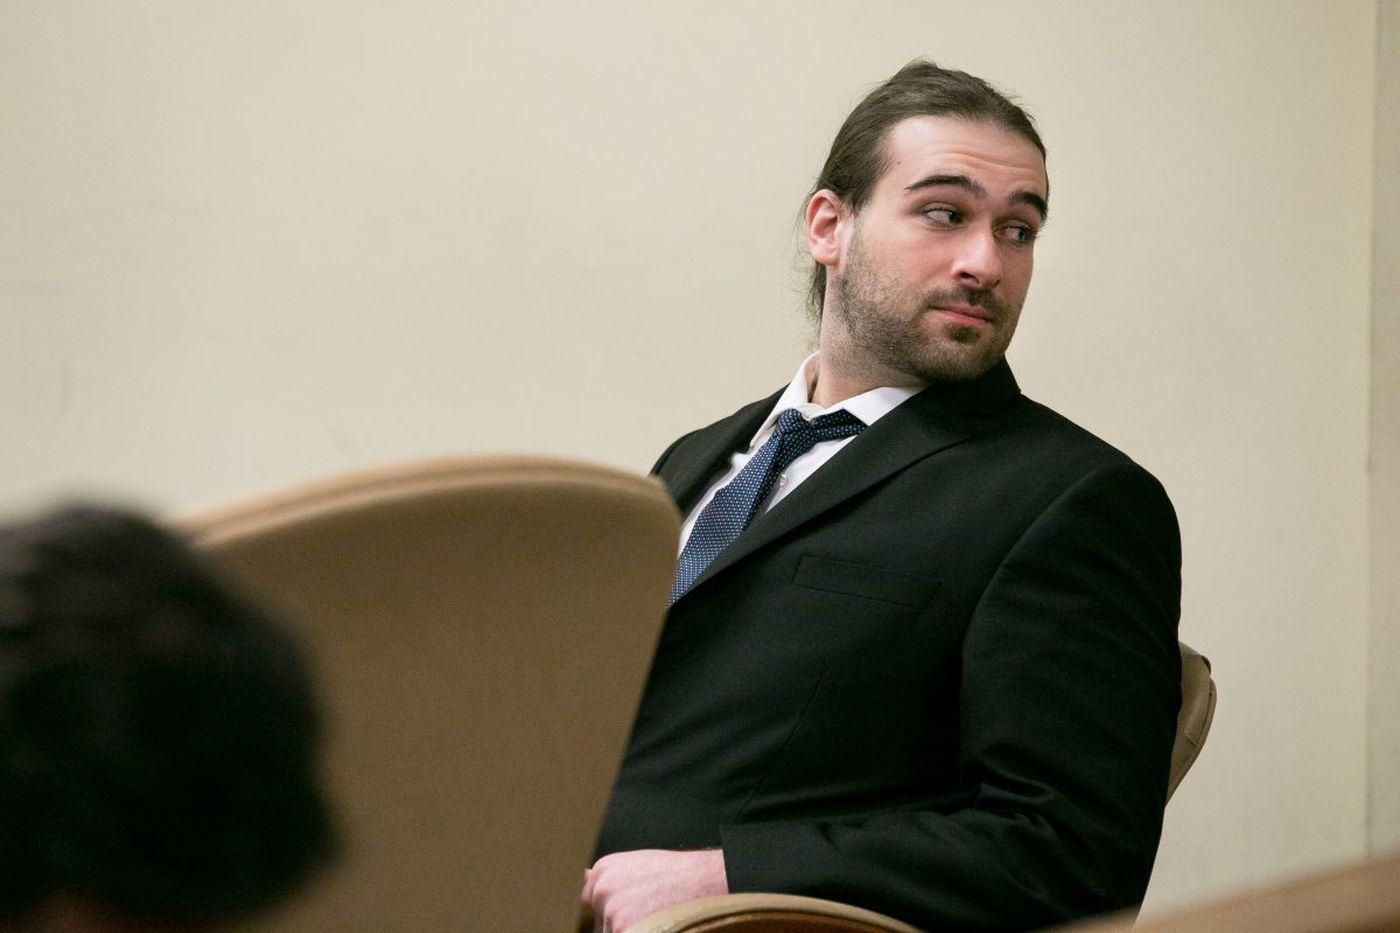 Facing new trial, Creato pleads guilty in death of 3-year-old son